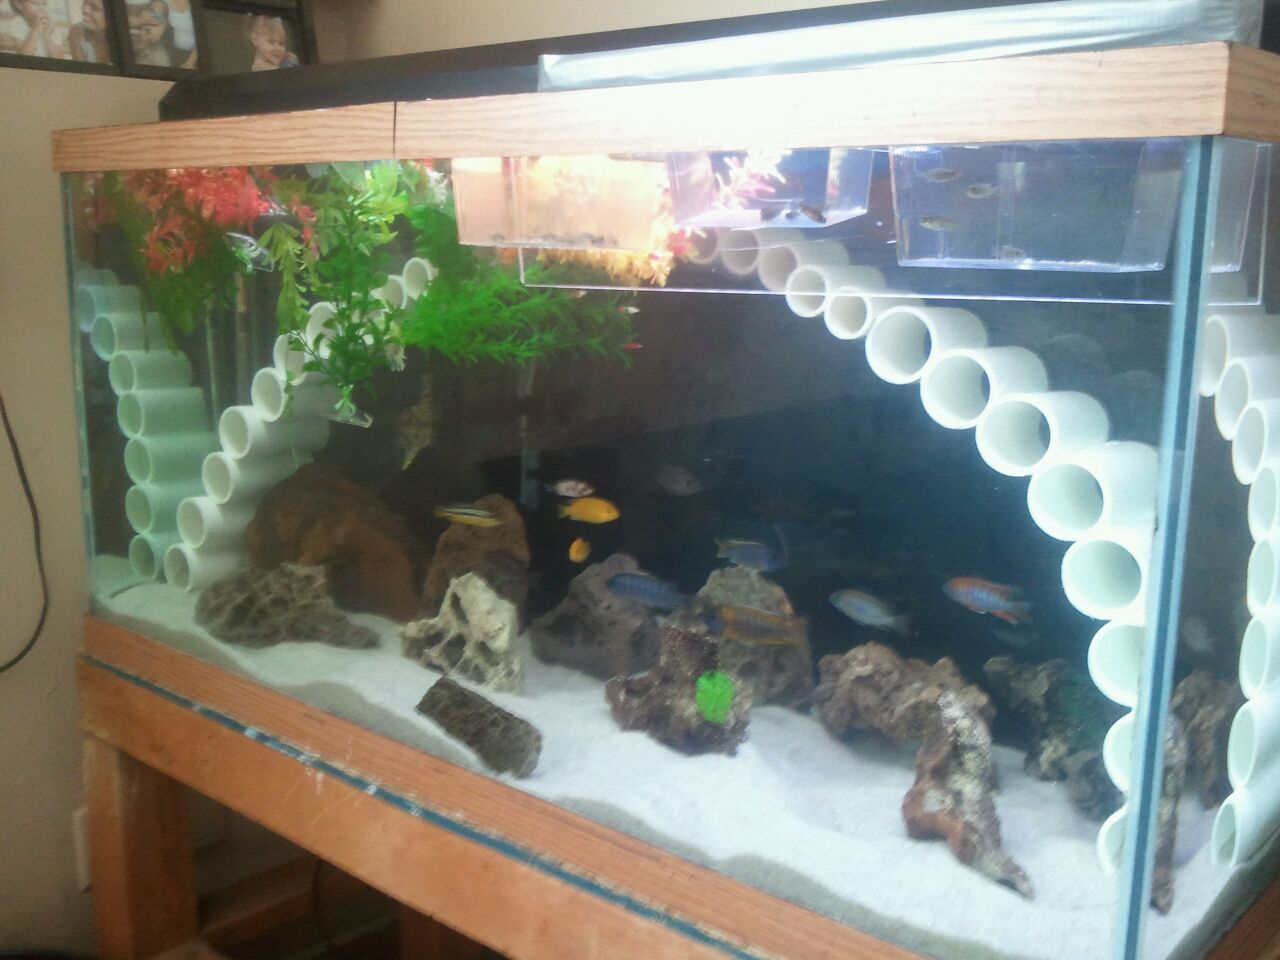 Awesome Cichlid Tank Decorations 2 Decorations For Fish Tank African Cichlids Fish Tank Decorations Diy Fish